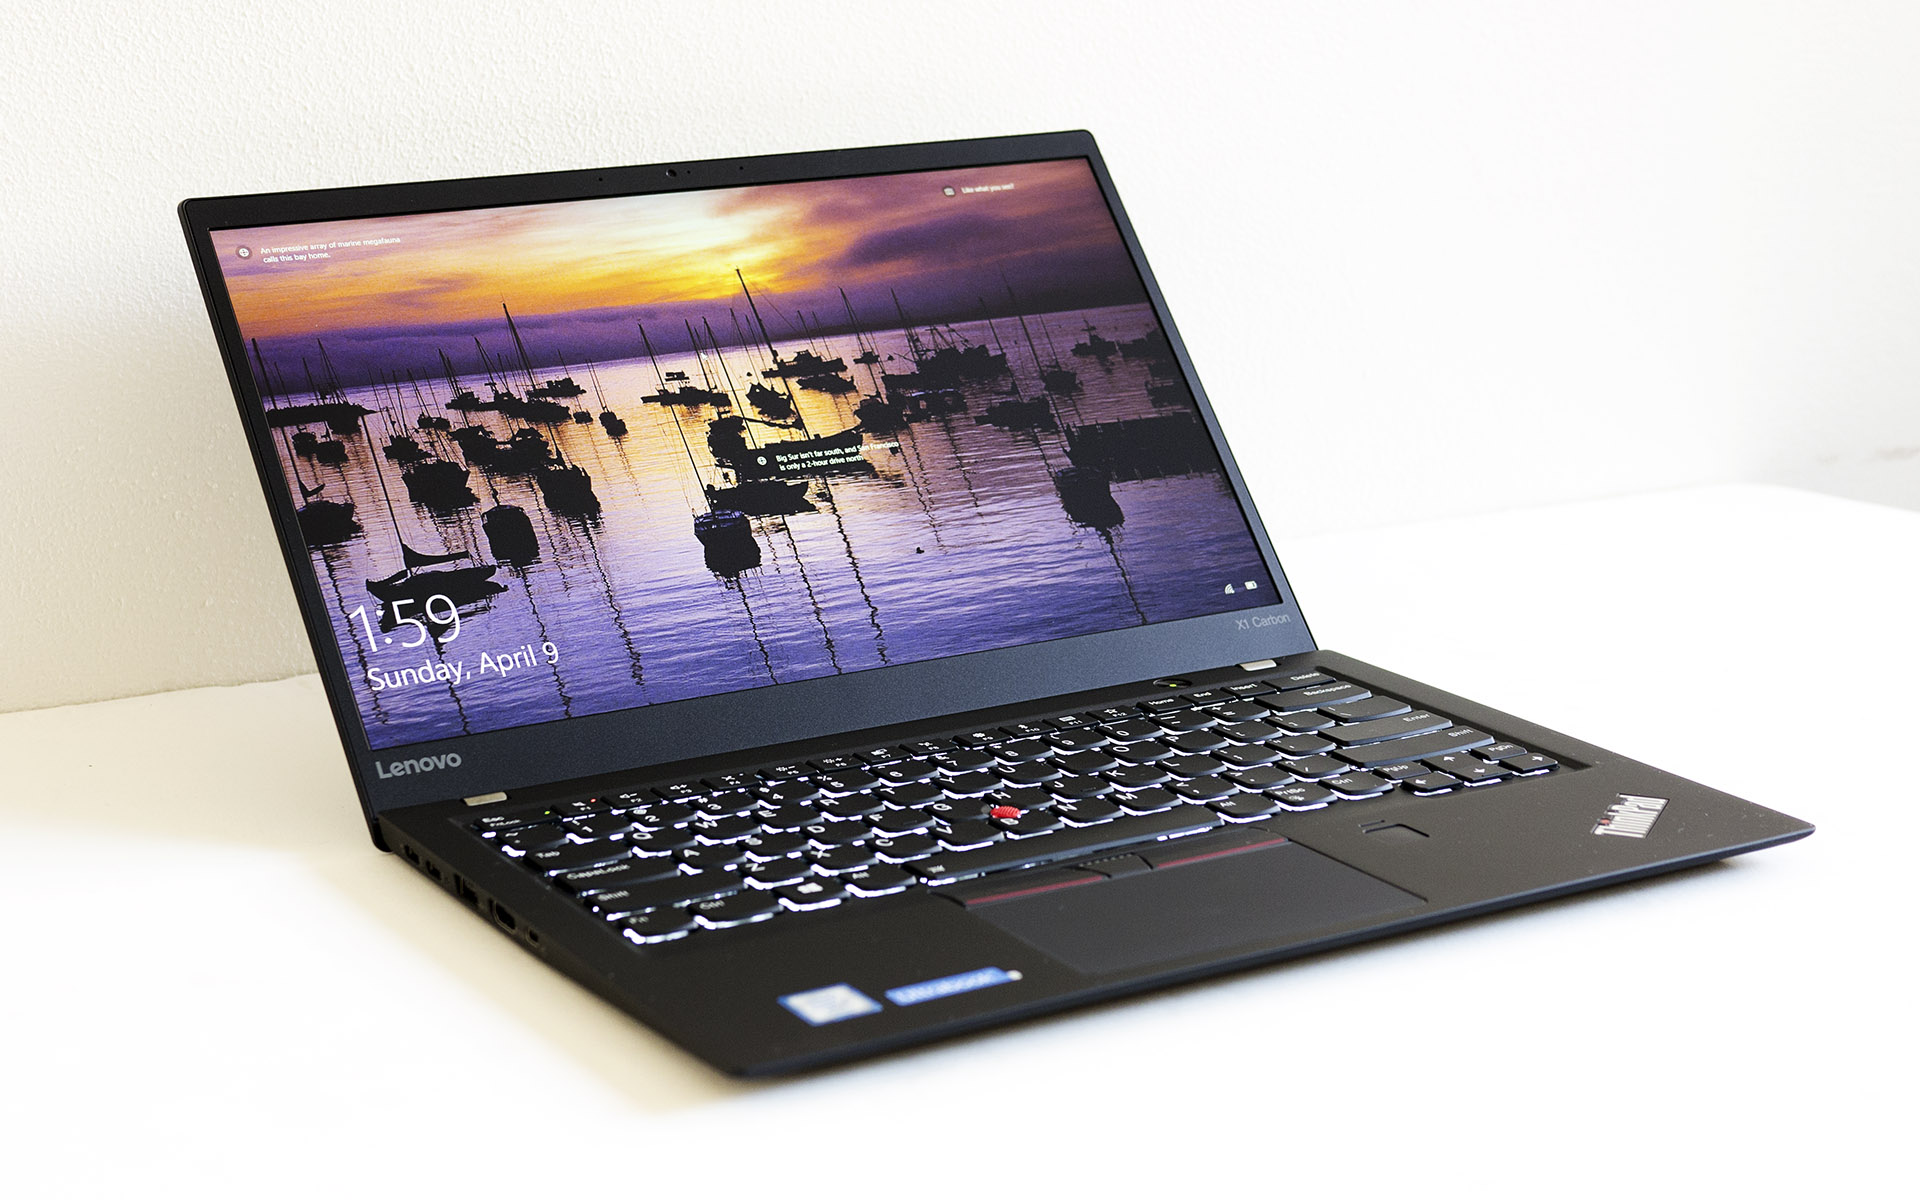 Thinkpad X1 Carbon: Core i5